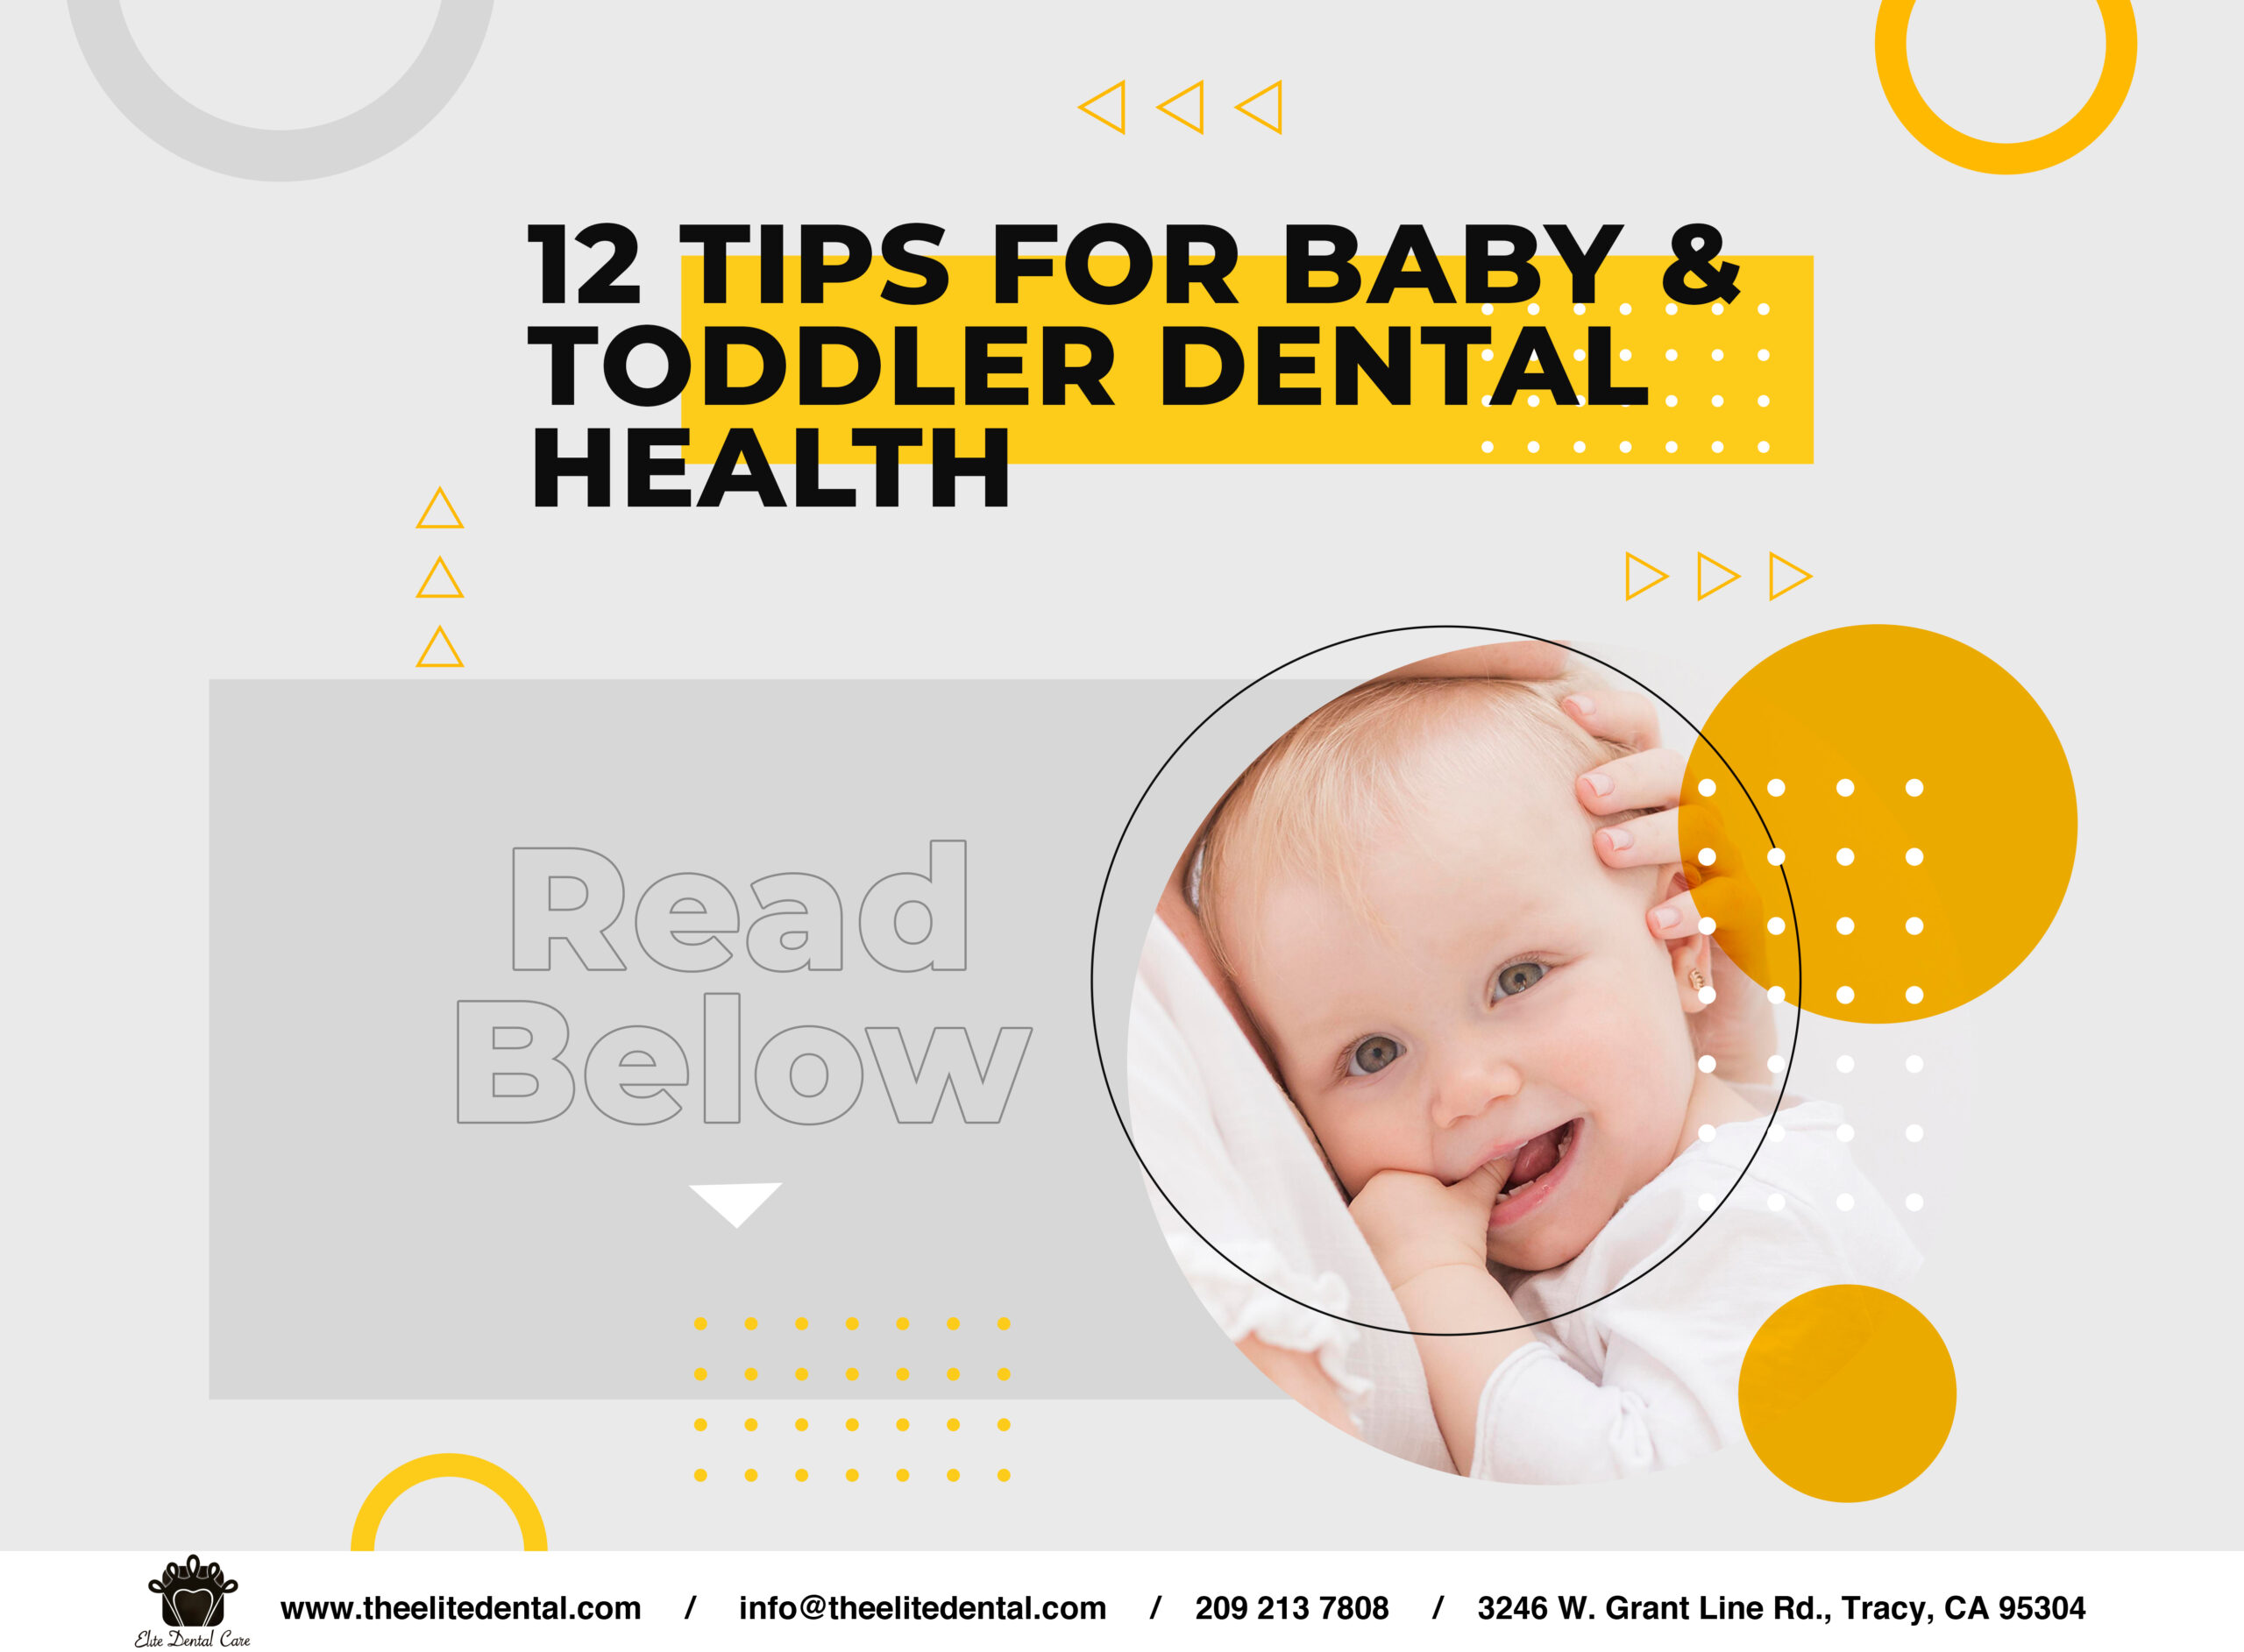 12 tips for baby and toddler dental health